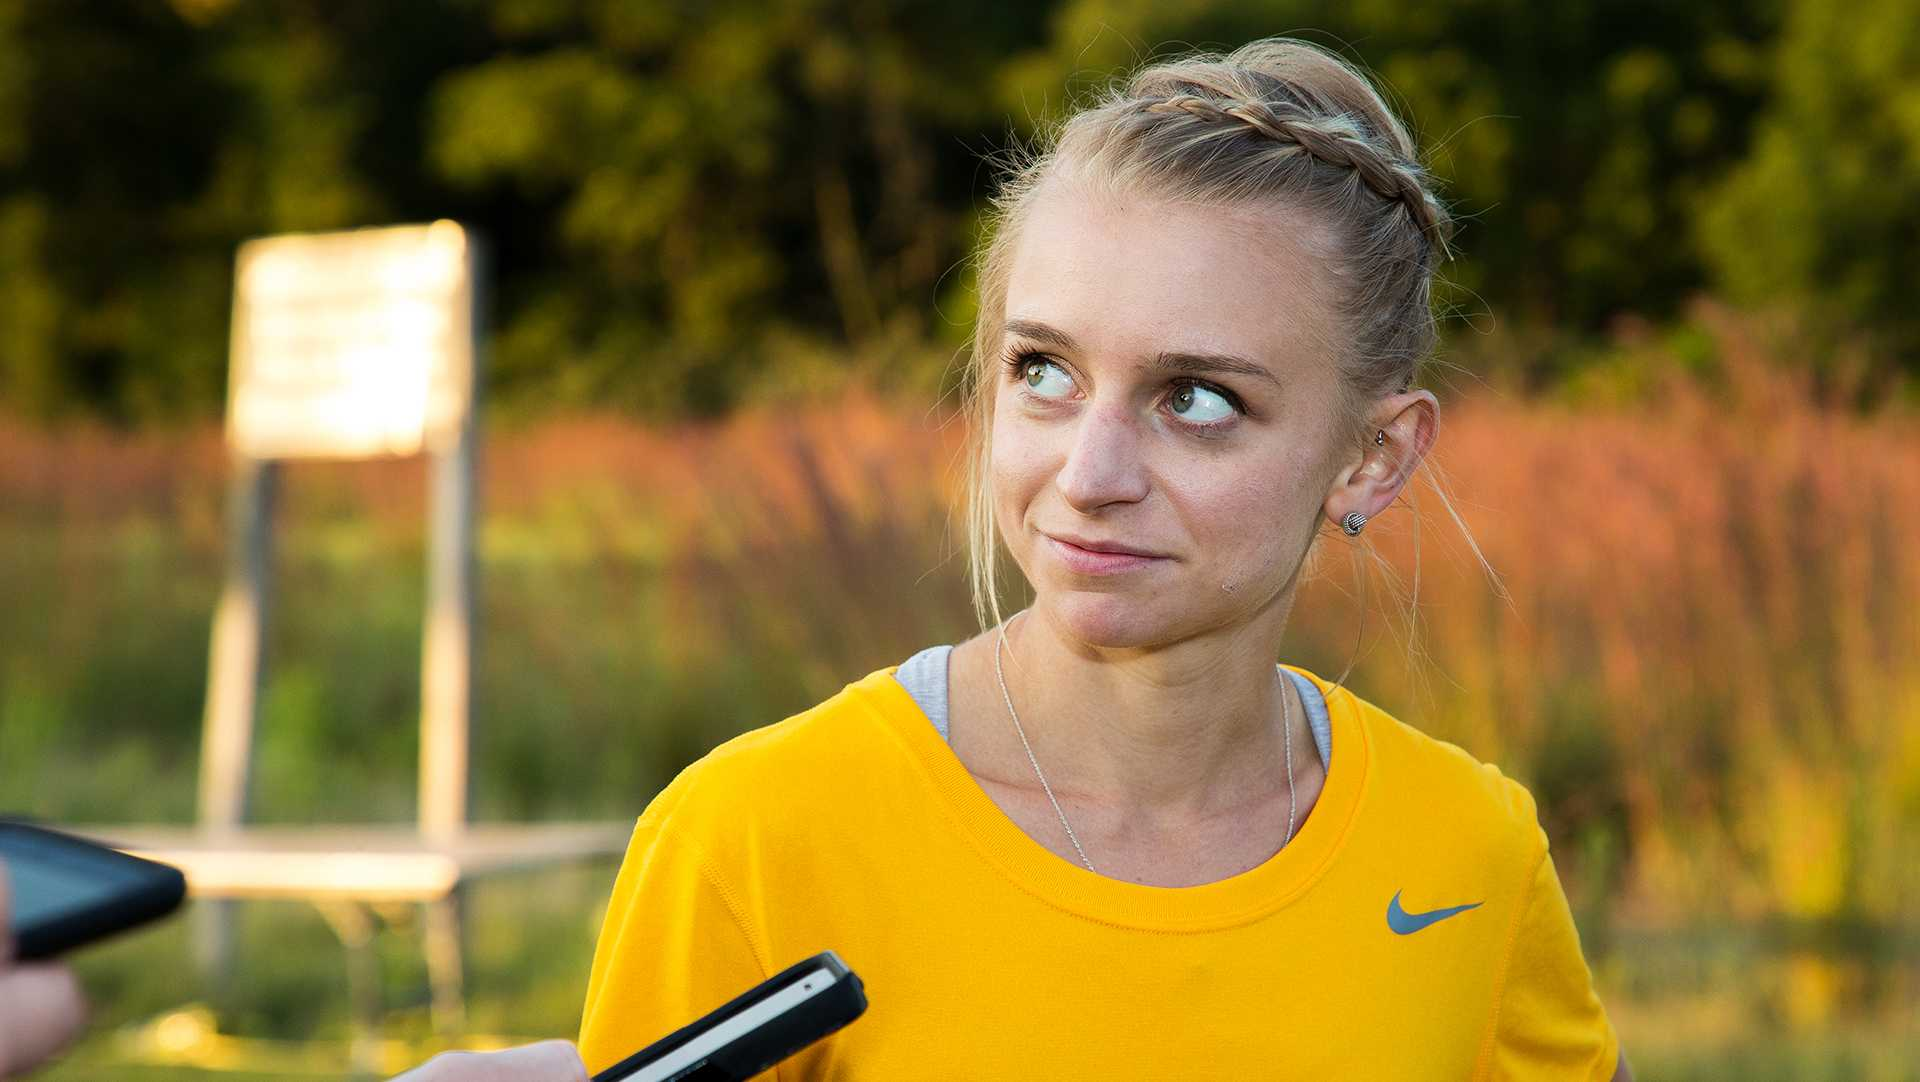 Andrea Shine speaks to the media at the Hawkeye Invitational Cross Country meet on Friday, September 1, 2017.